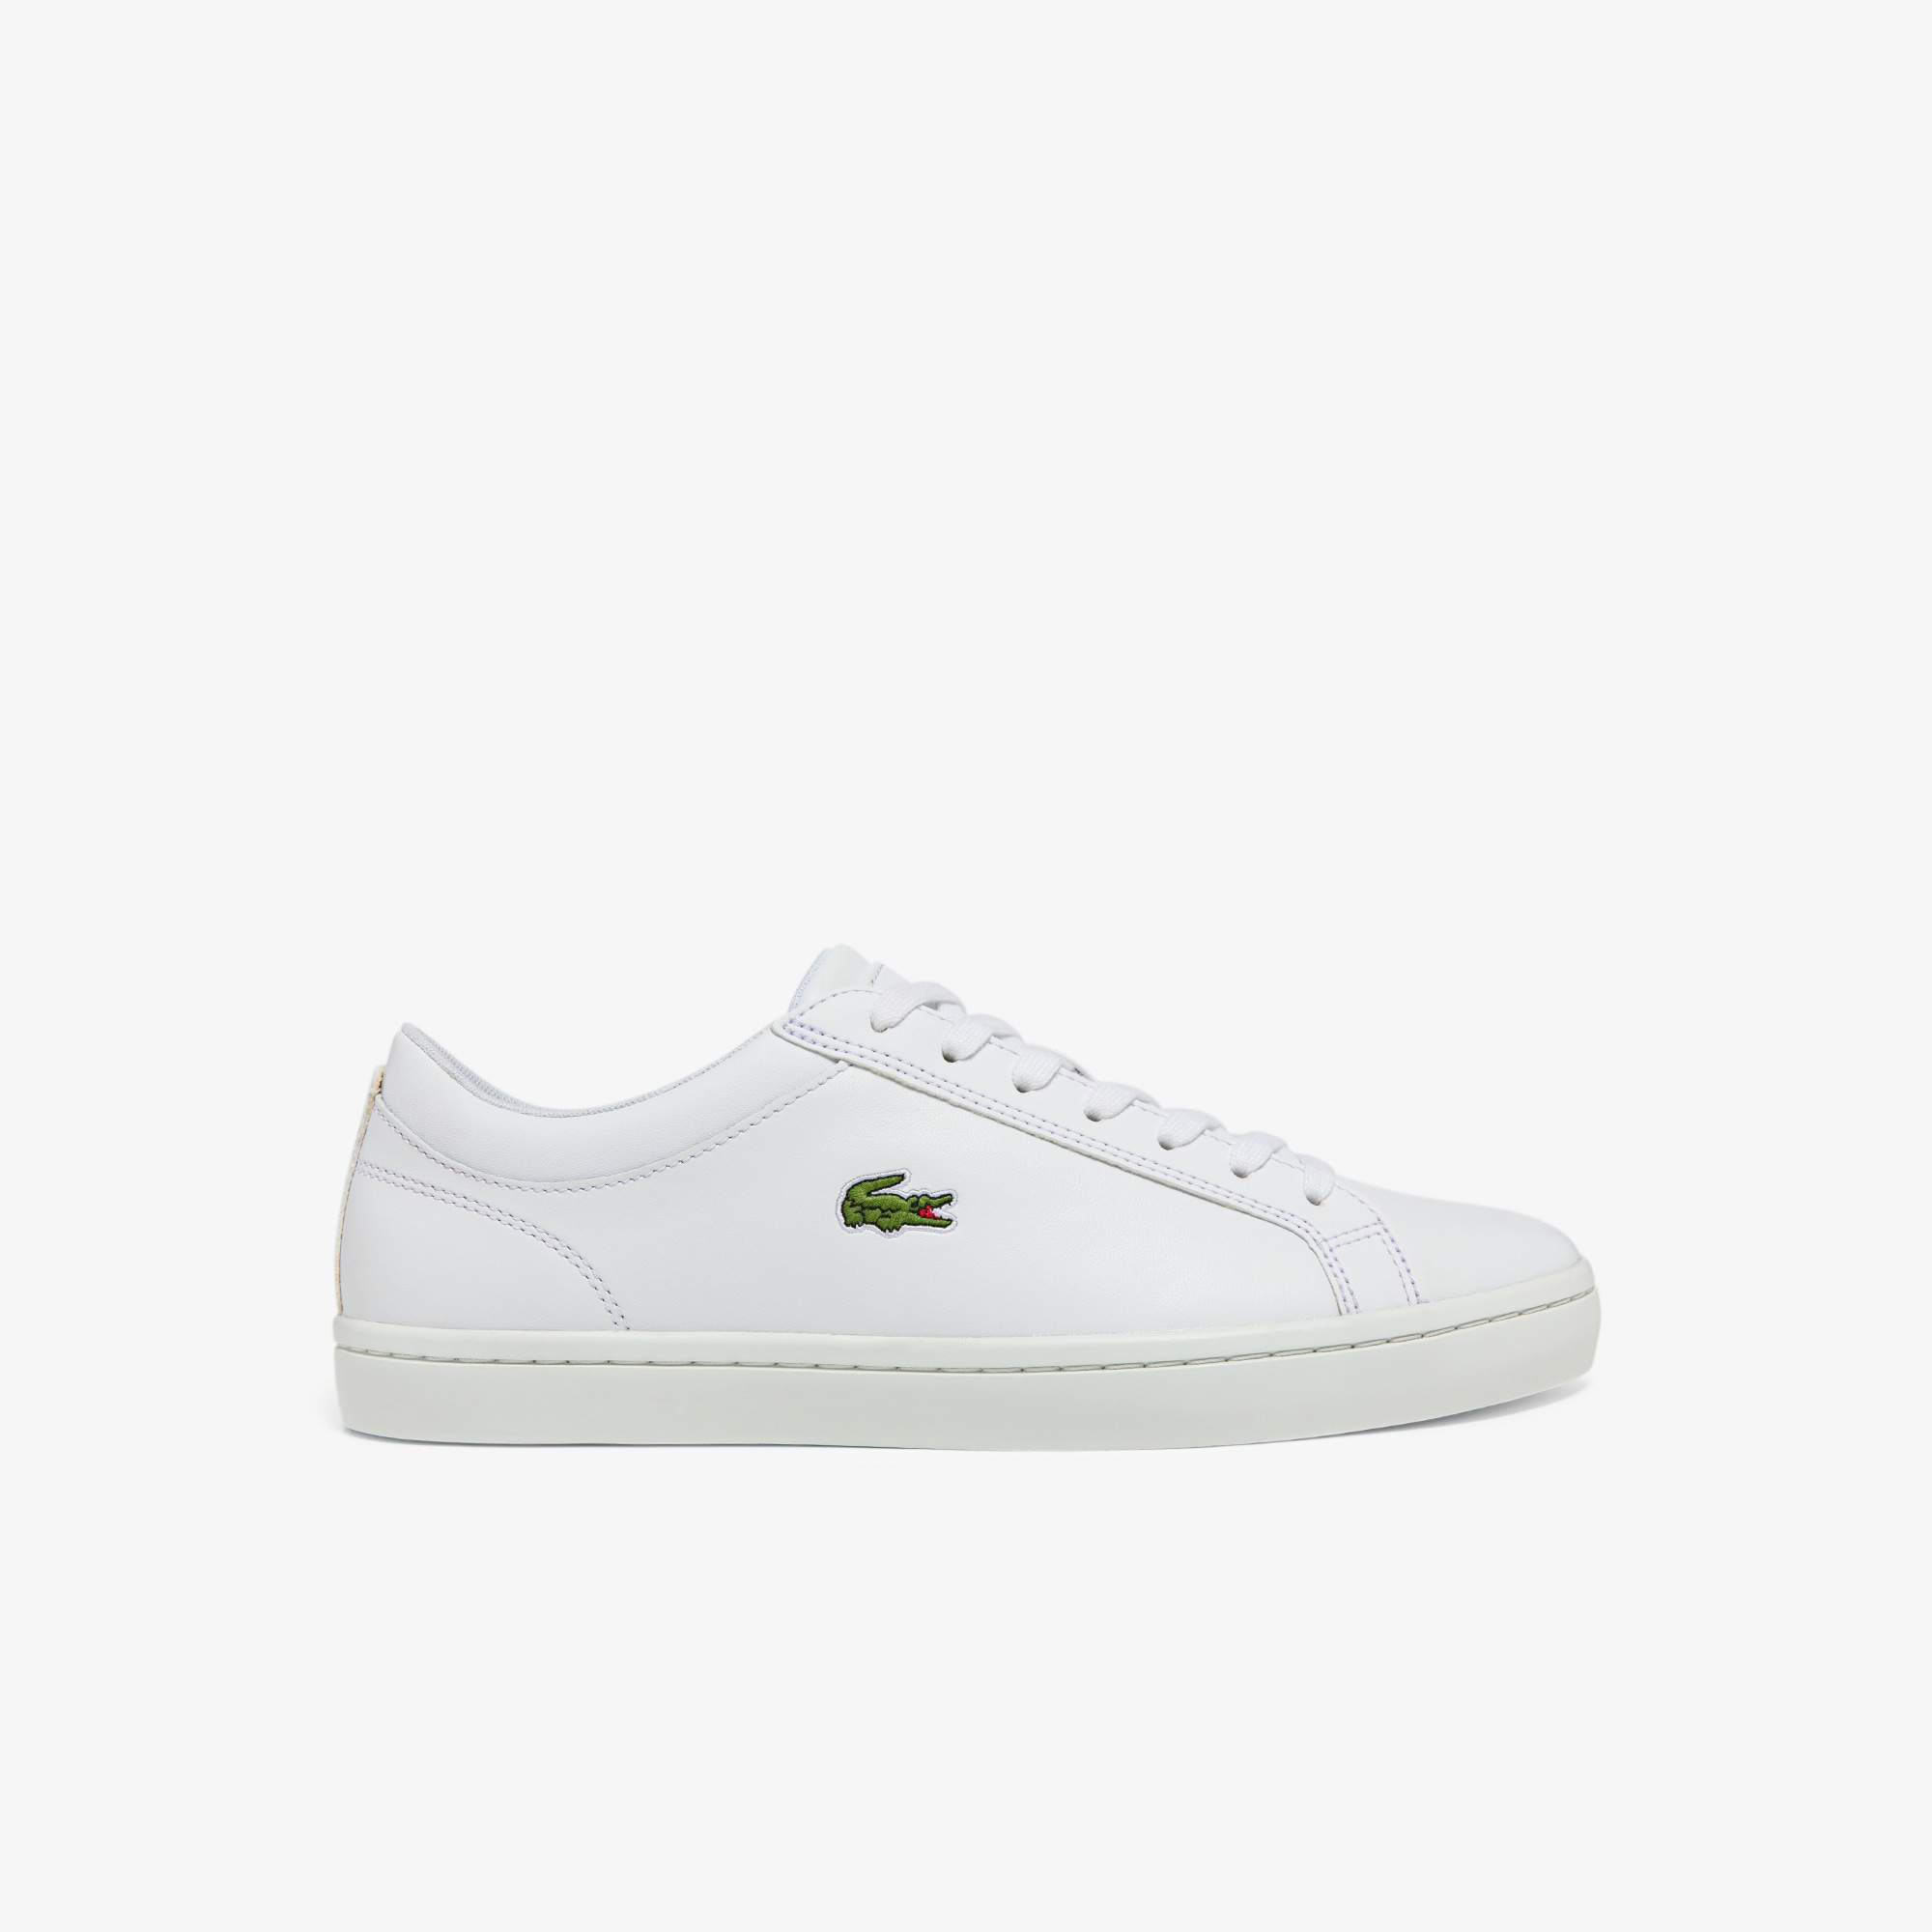 623137e85d Chaussures homme | Collection Homme | LACOSTE